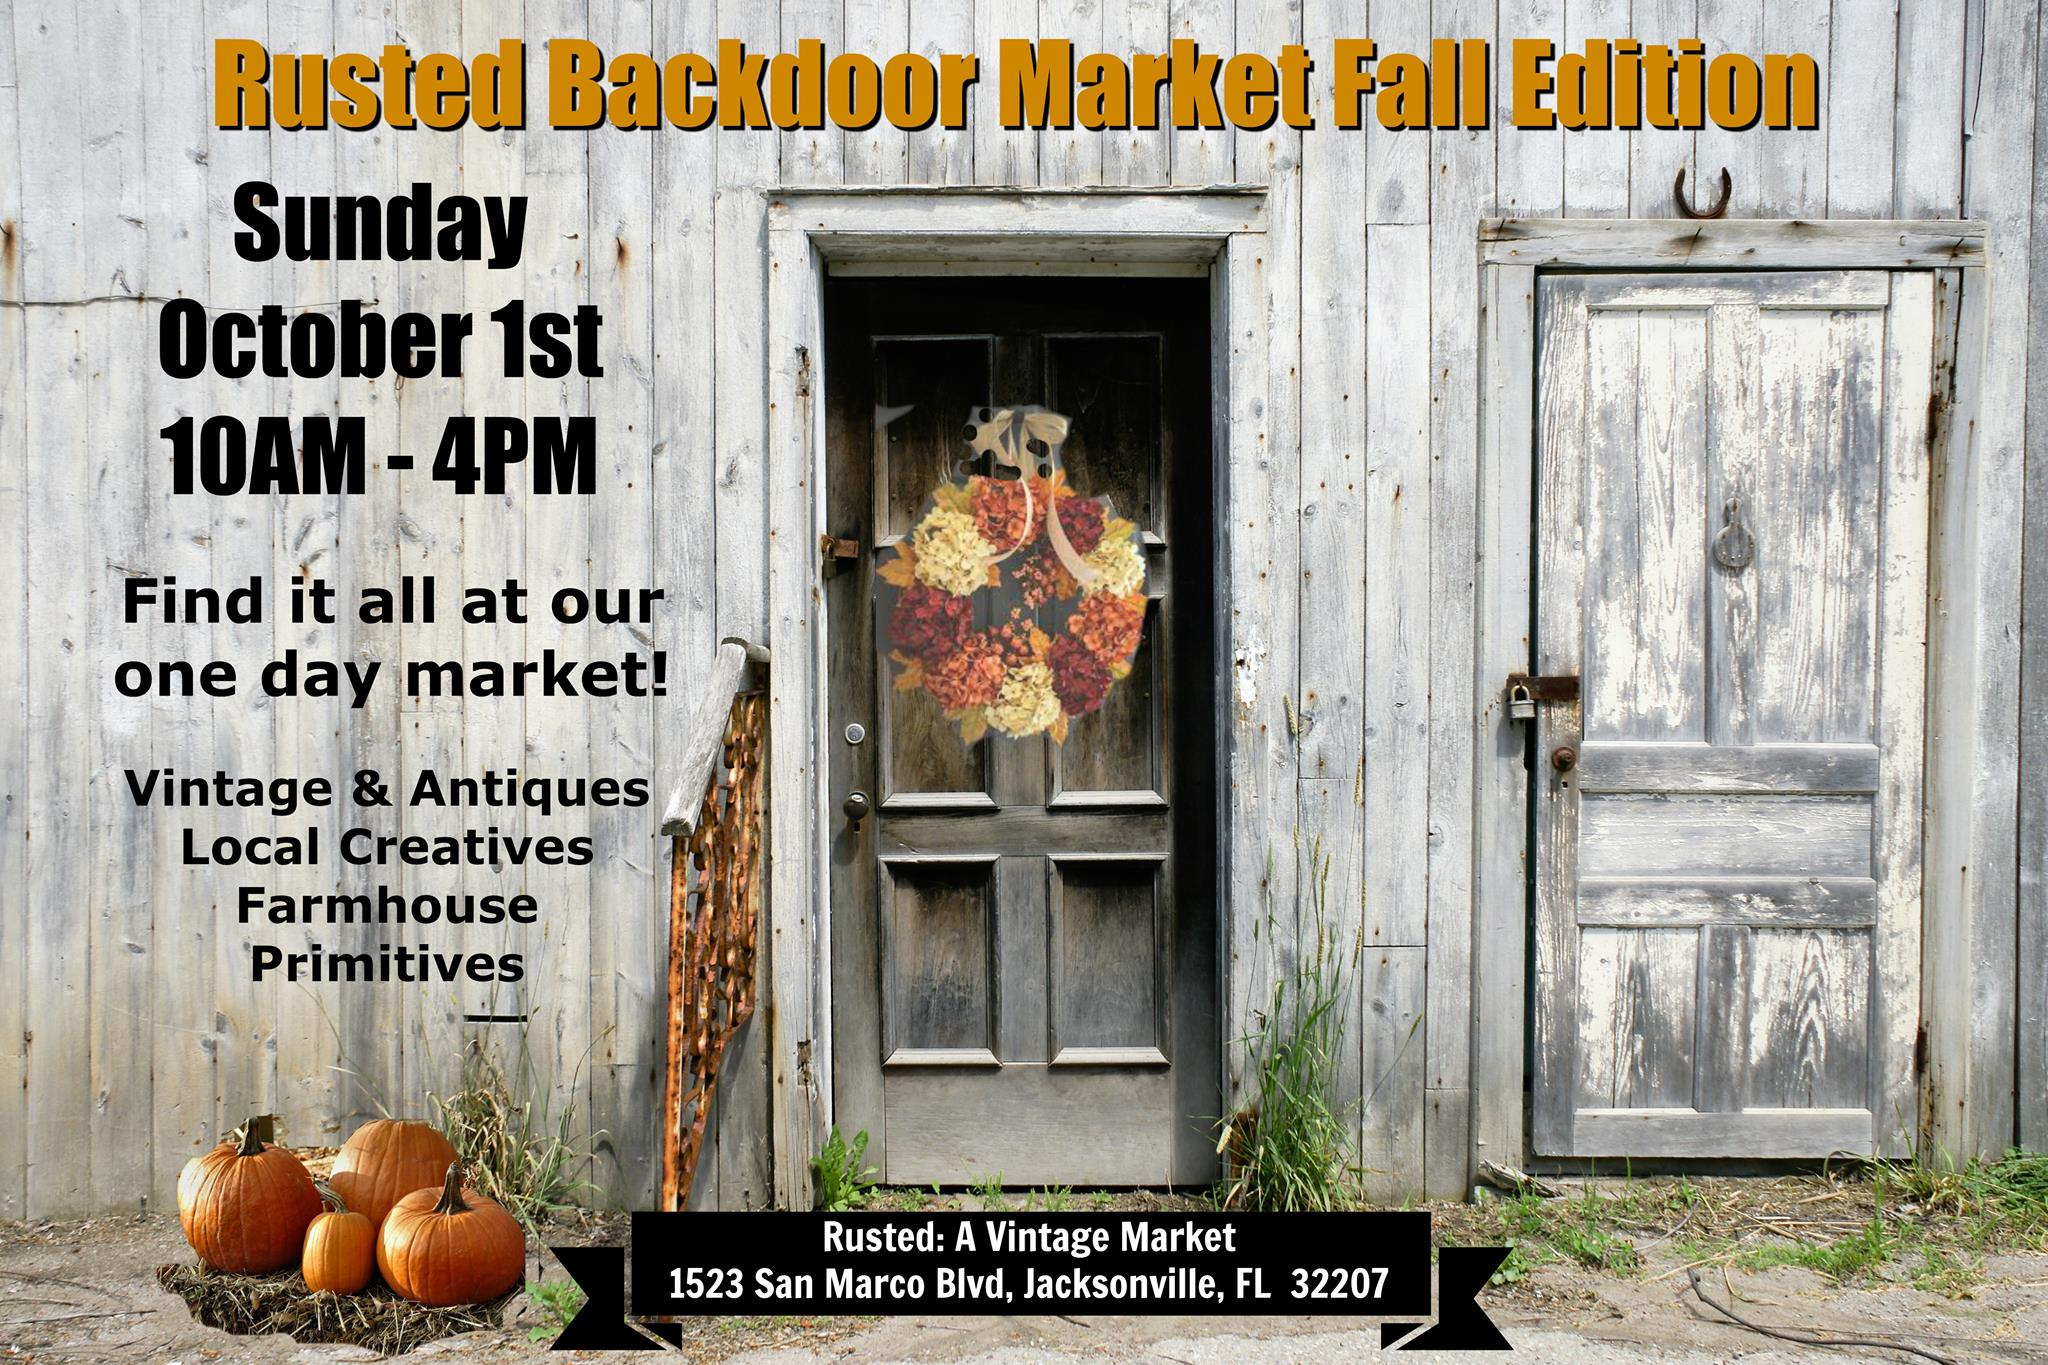 Fall Back Door Market